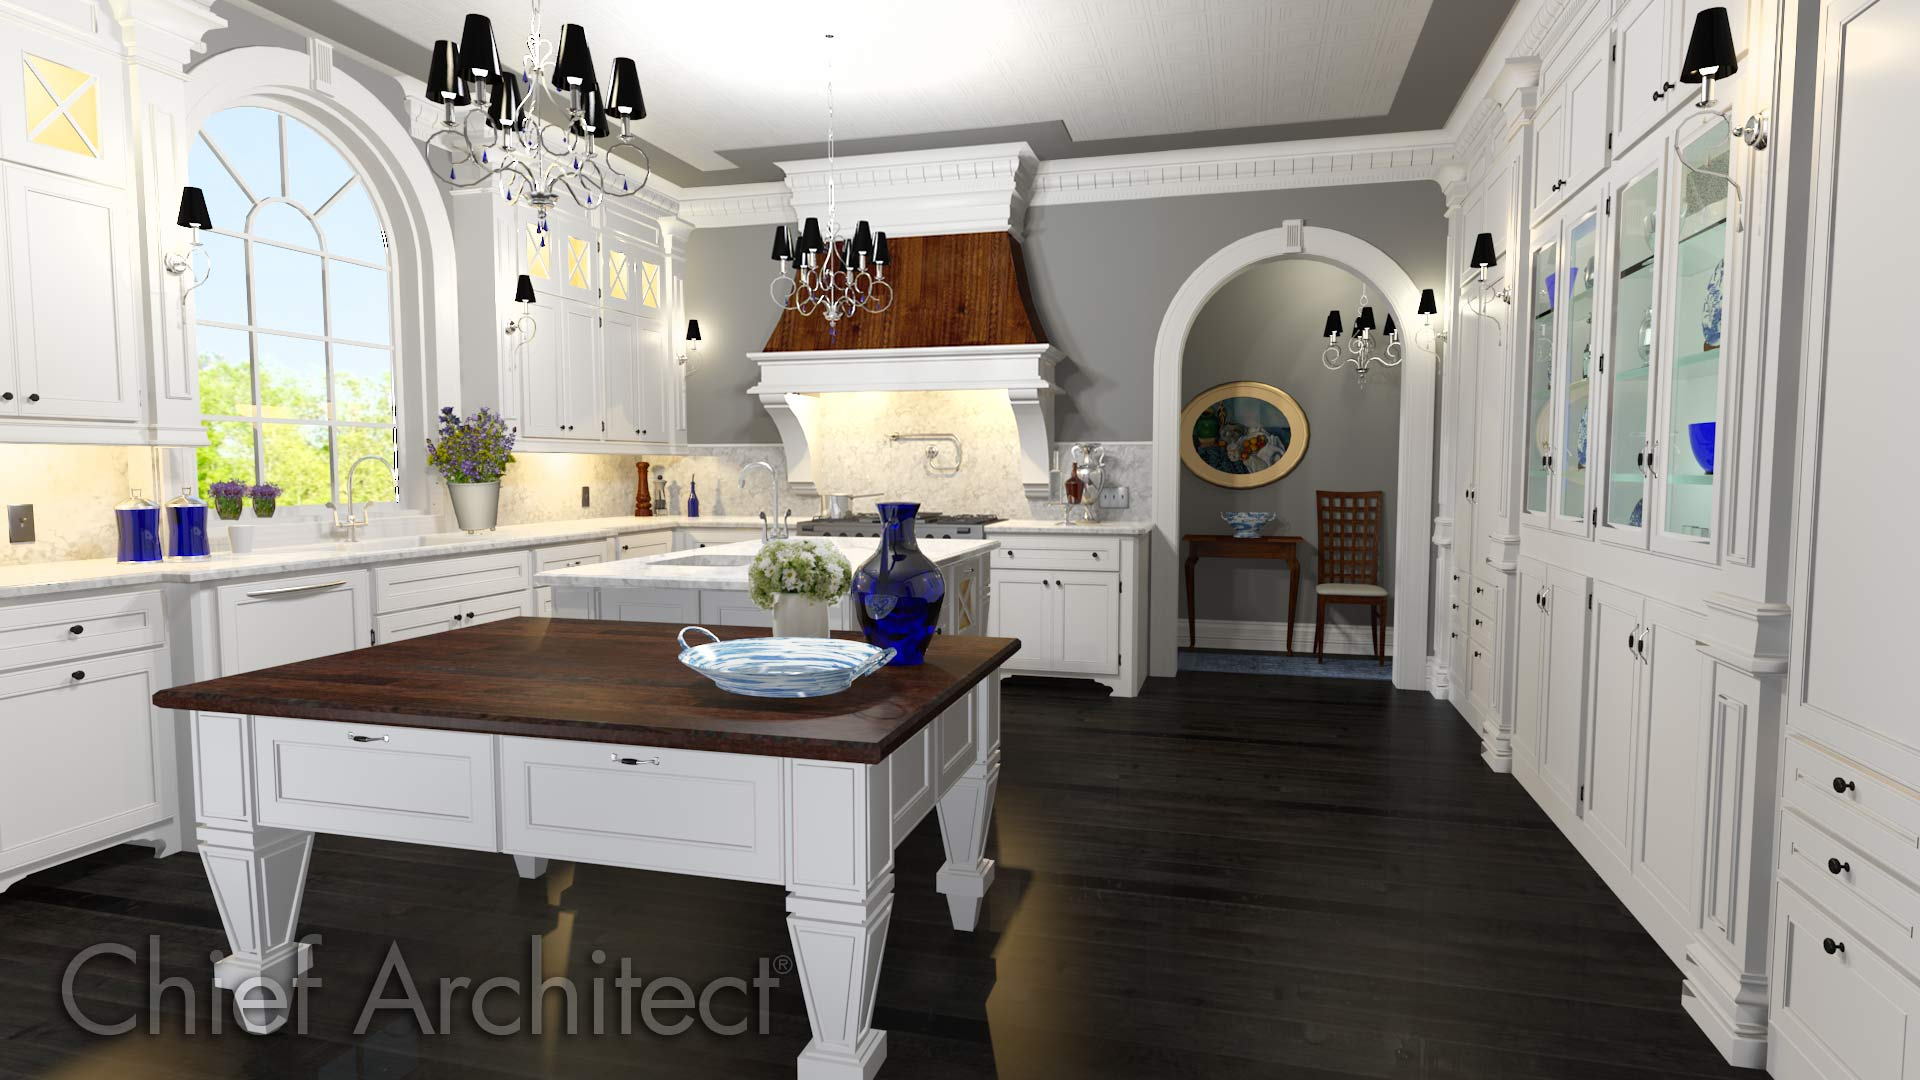 Chief architect home design software sample gallery for Building traditional kitchen cabinets pdf